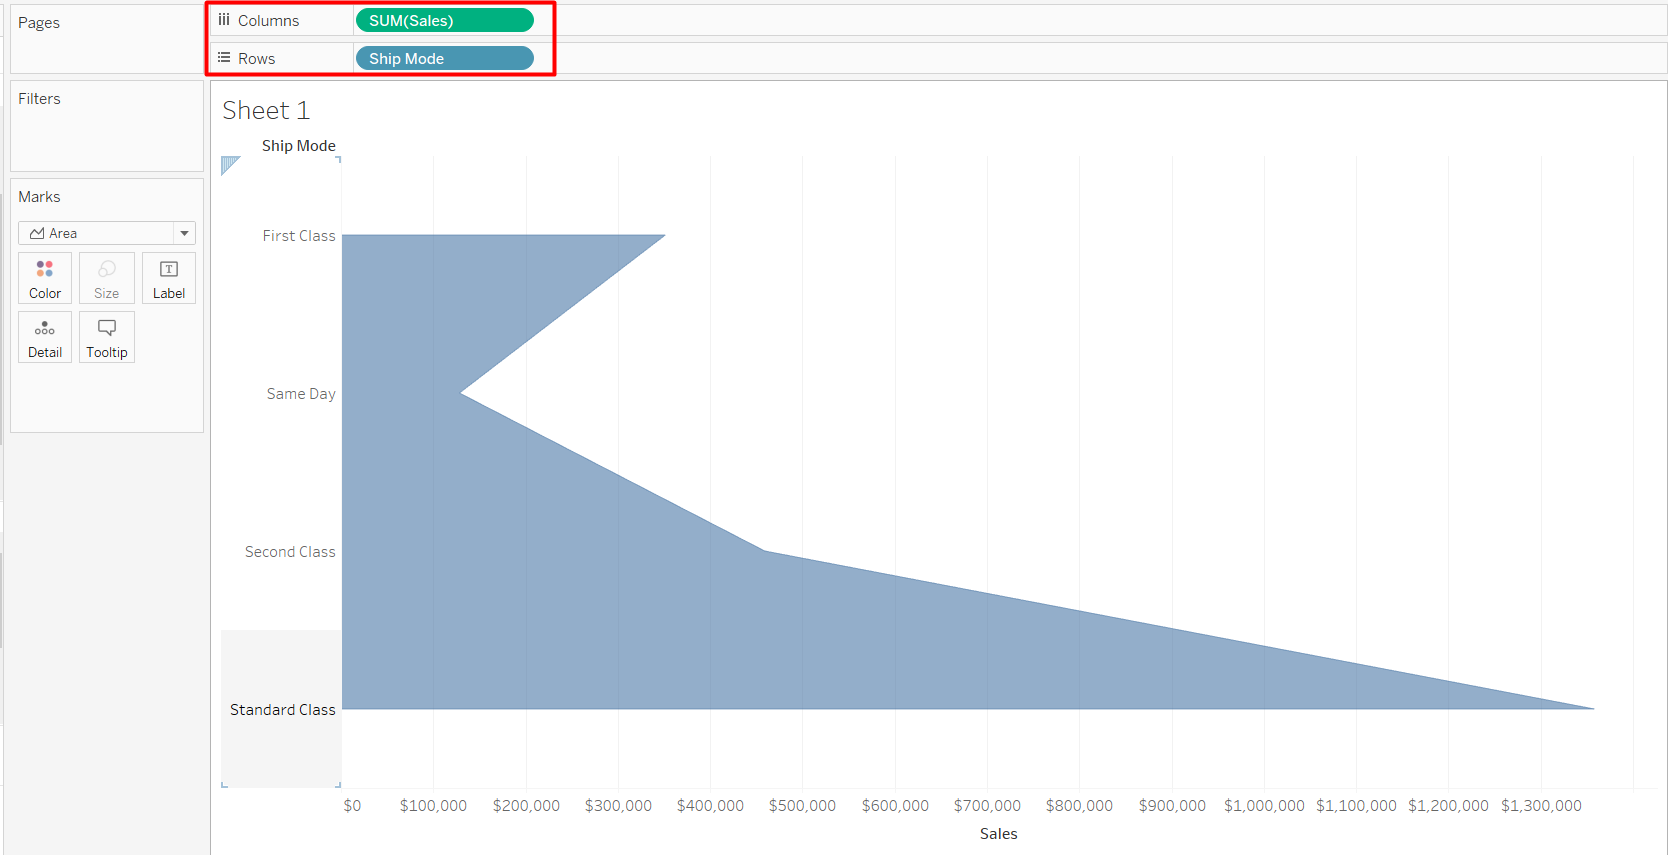 Insert the metrics to create a funnel chart in Tableau